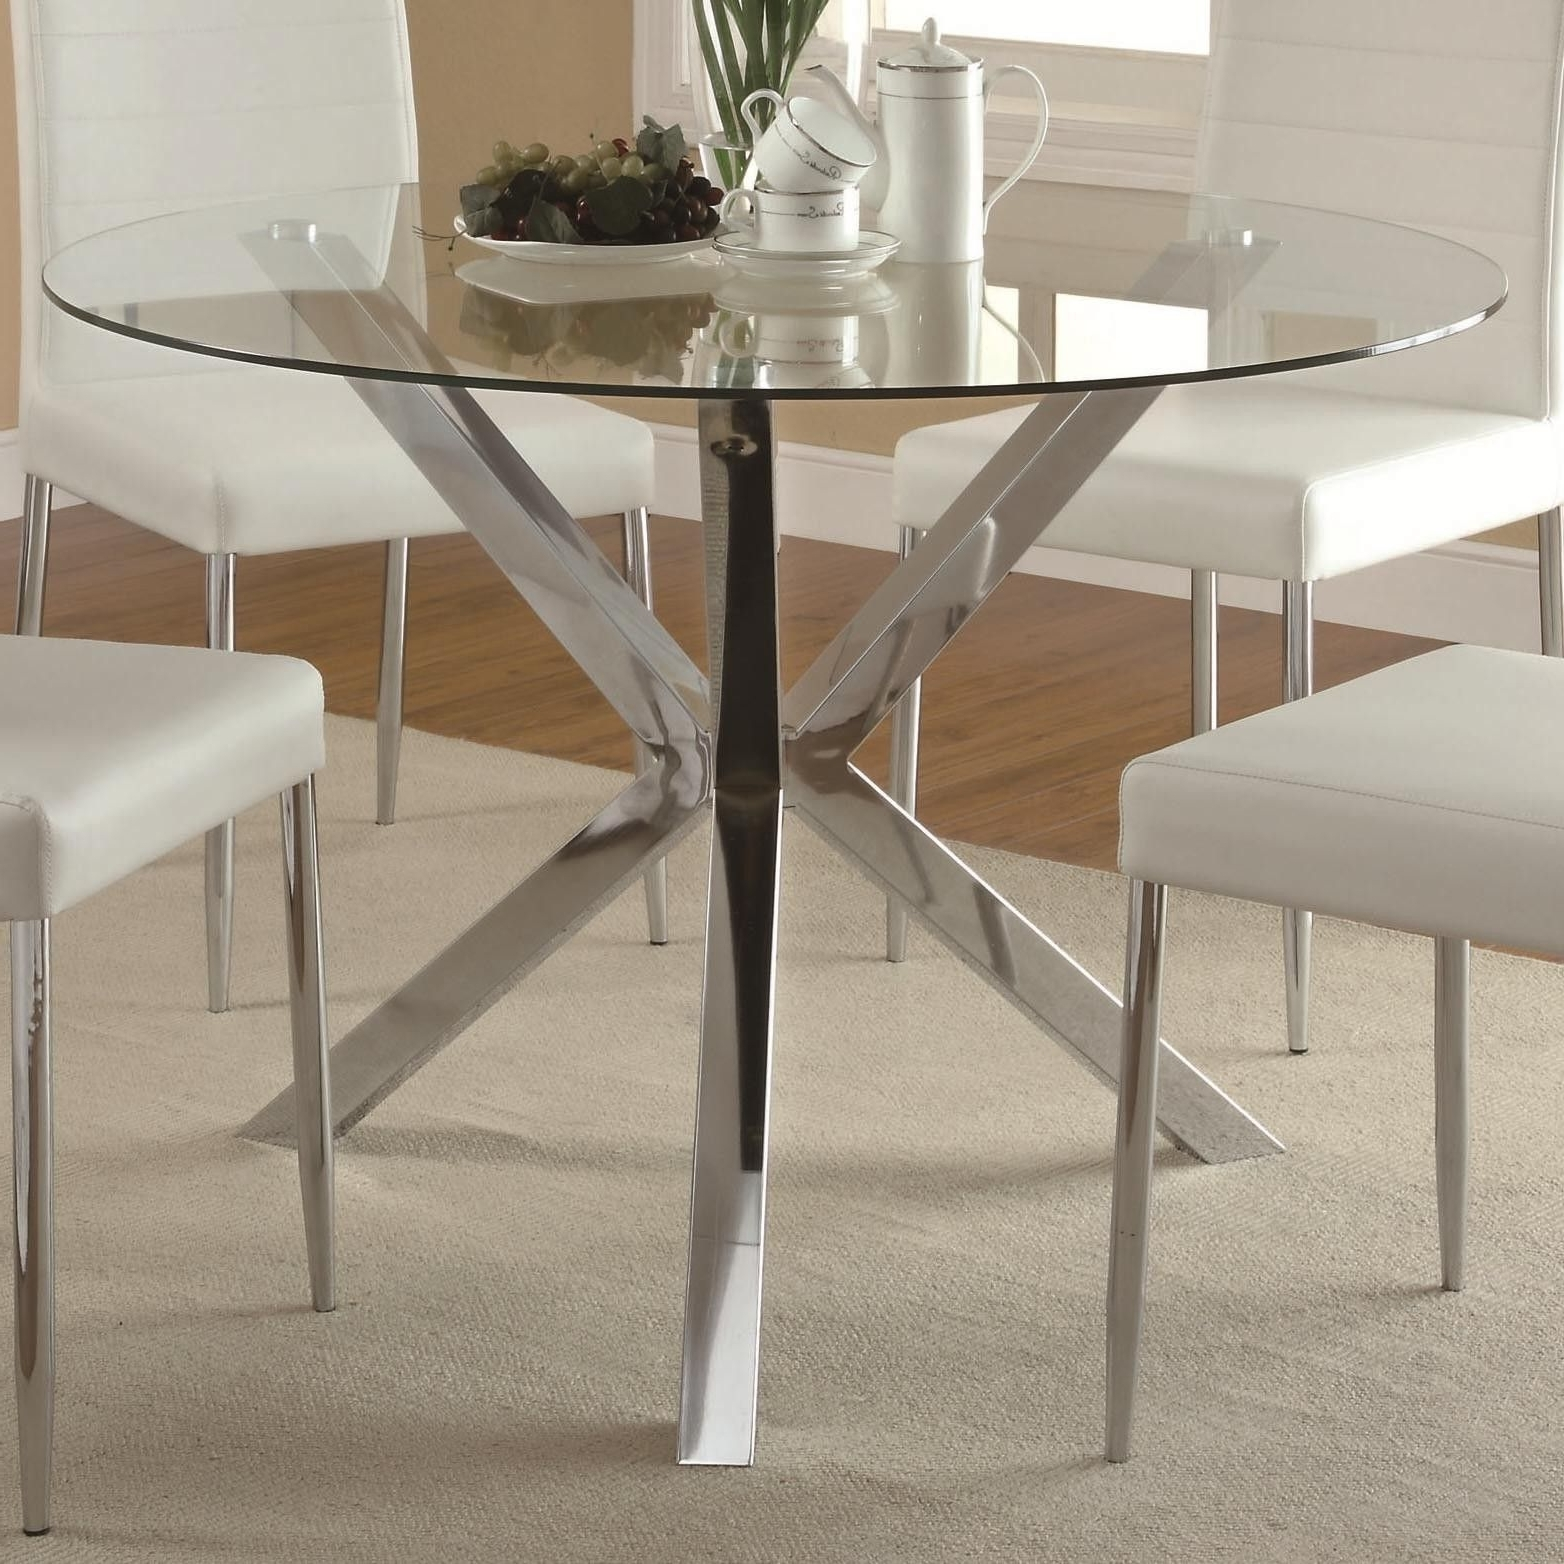 Vance Glass Top Dining Table With Unique Chrome Base 120760 Qlx1 Inside Newest Lassen 5 Piece Round Dining Sets (Gallery 5 of 25)